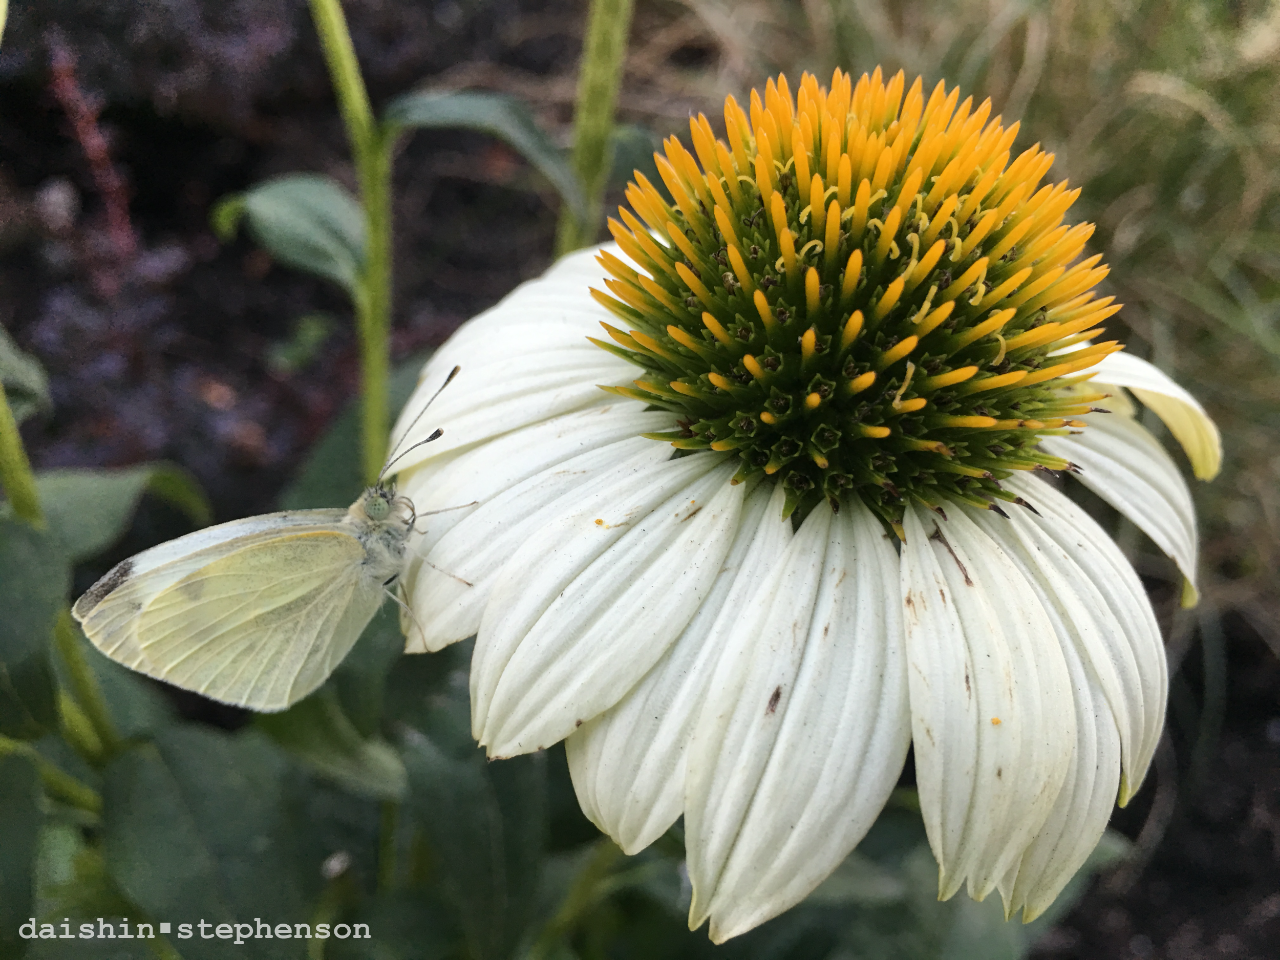 white echinacea blossom with white-winged moth on petal